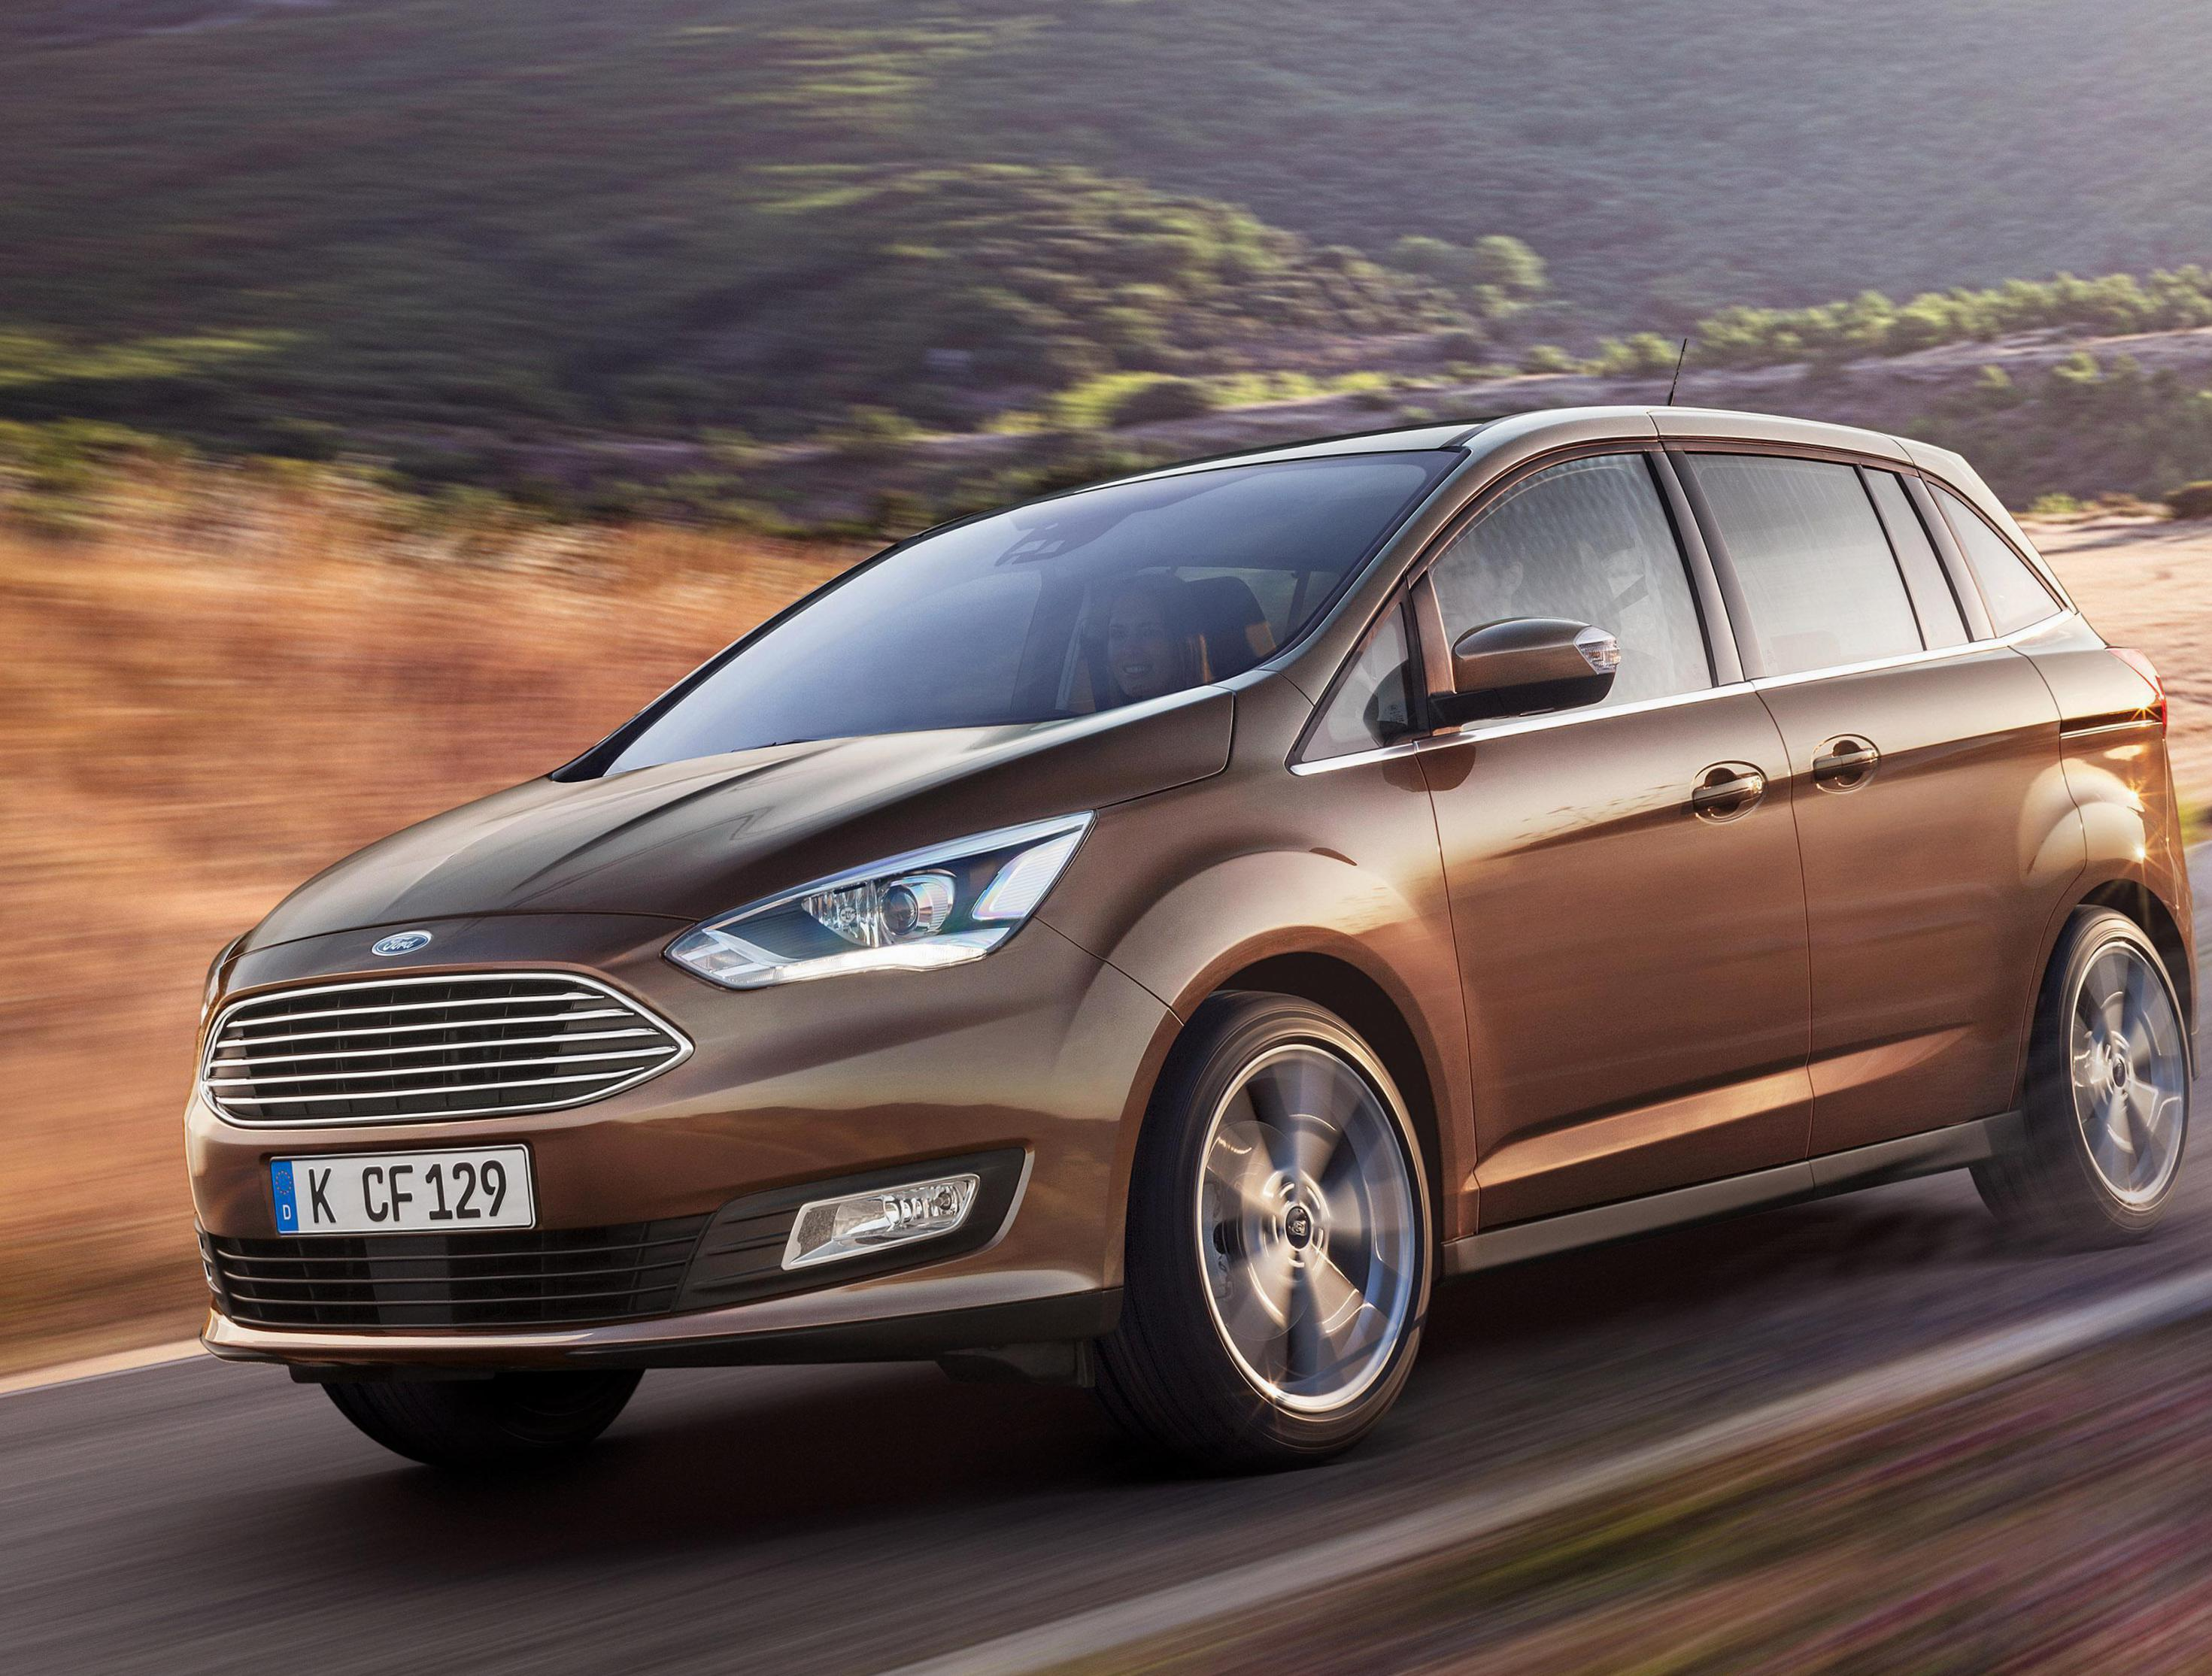 C-Max Ford price 2012